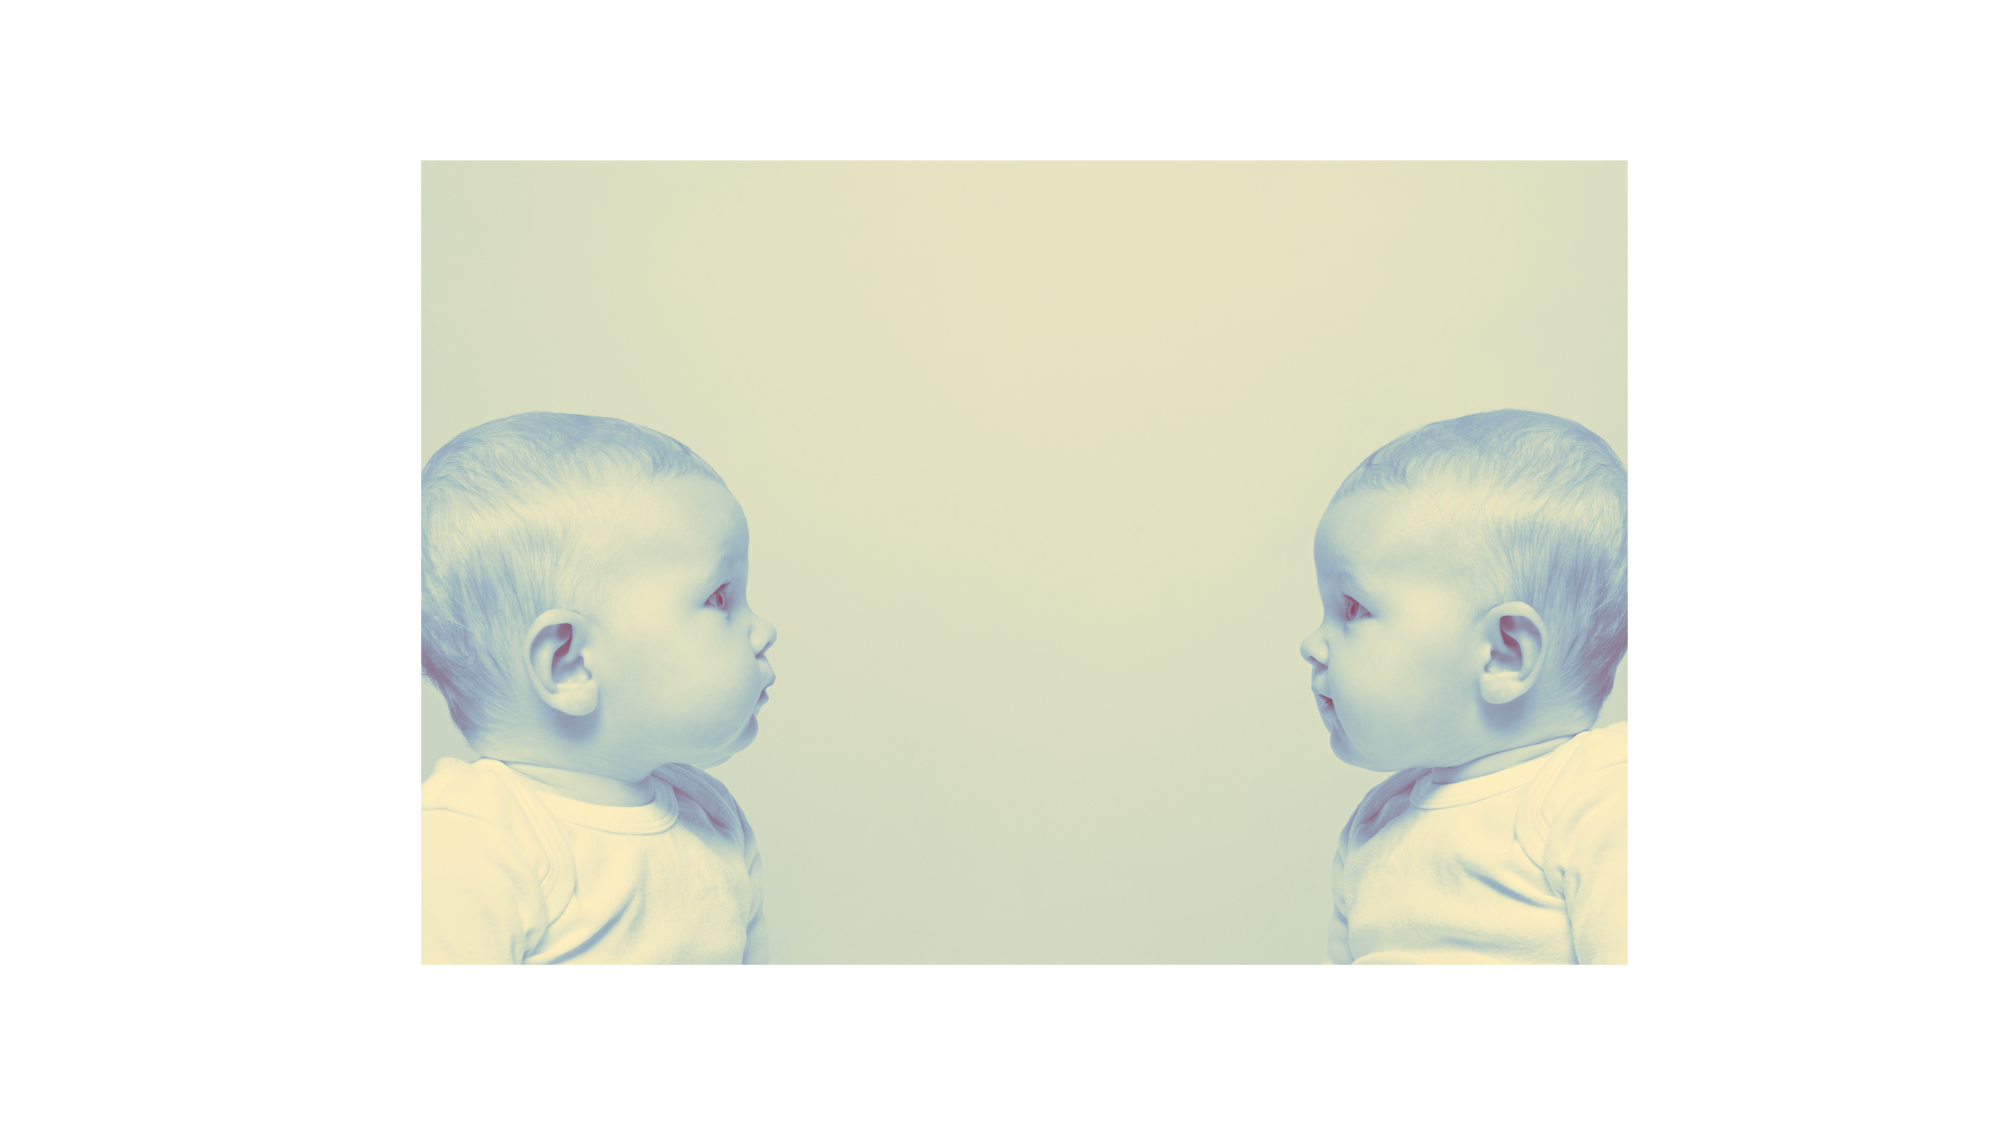 Rare Semi-Identical Twins Were Born in Australia—Here's What That Means